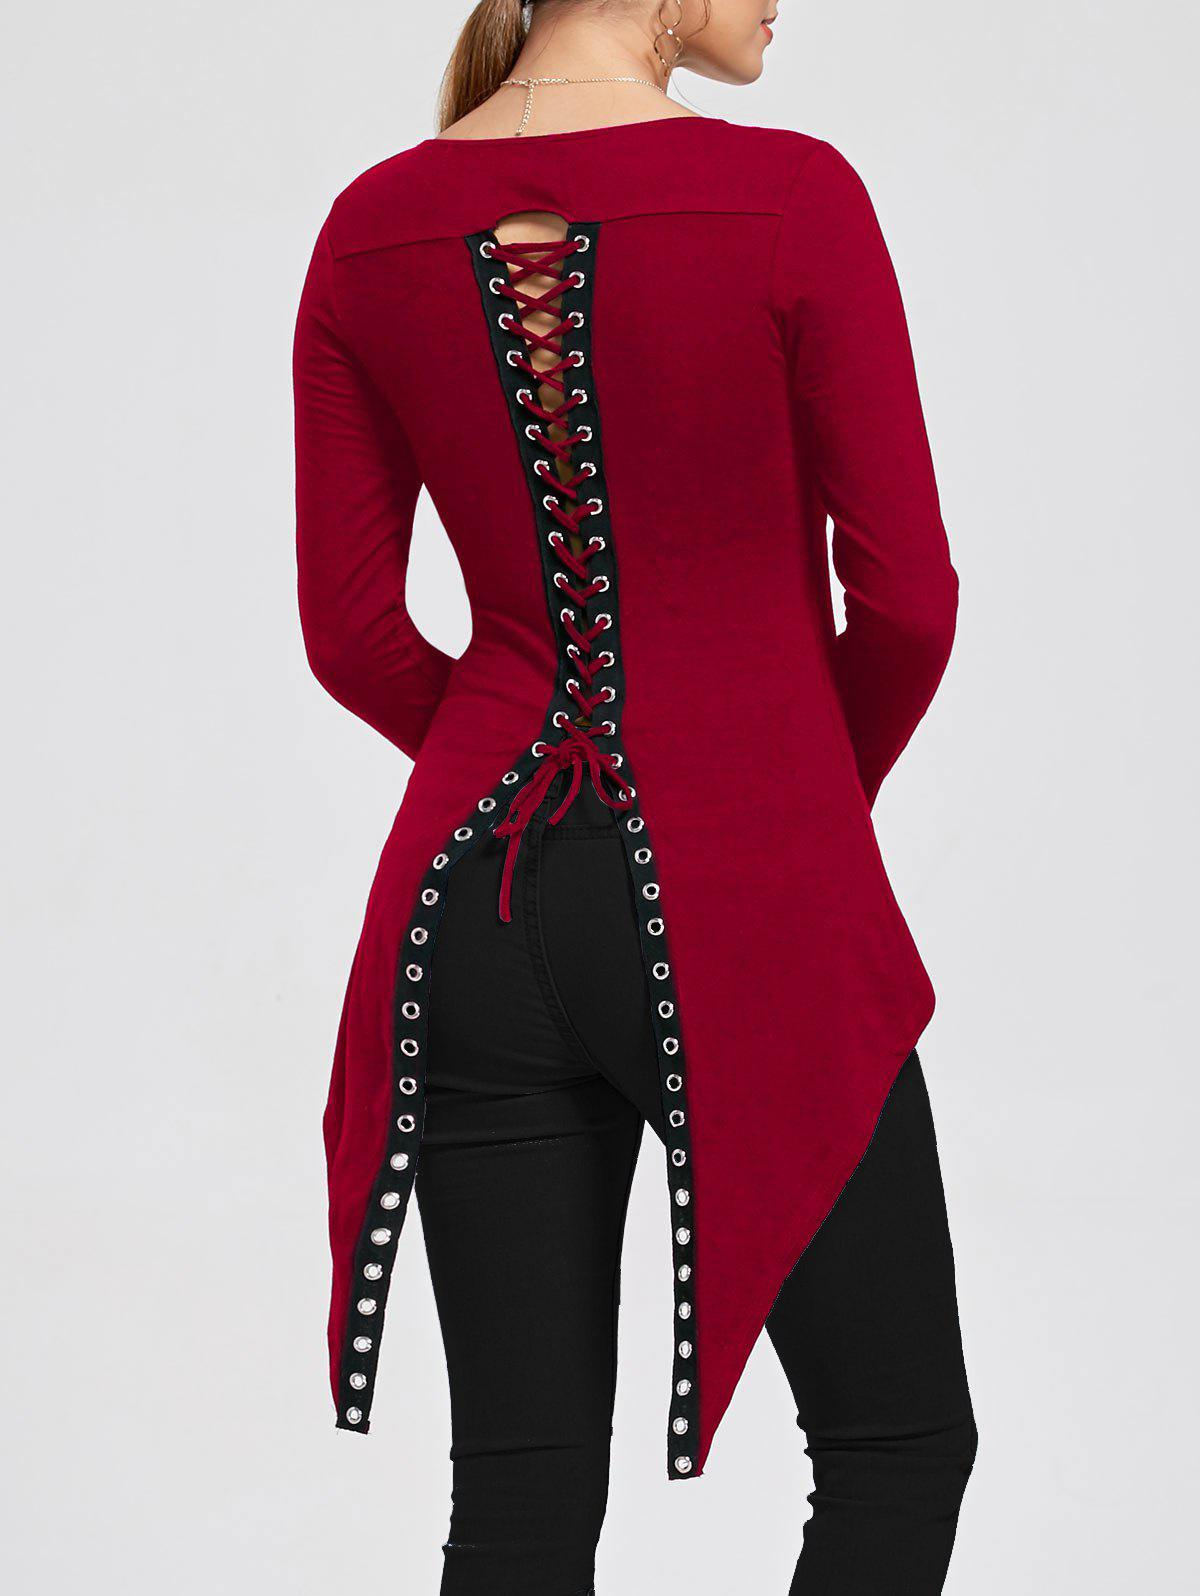 Slit Back Lace Up Asymmetrical T-shirtWOMEN<br><br>Size: L; Color: RED; Material: Cotton,Spandex; Shirt Length: Long; Sleeve Length: Full; Collar: Round Neck; Style: Fashion; Pattern Type: Solid; Season: Fall,Spring,Summer; Weight: 0.2600kg; Package Contents: 1 x T-shirt;